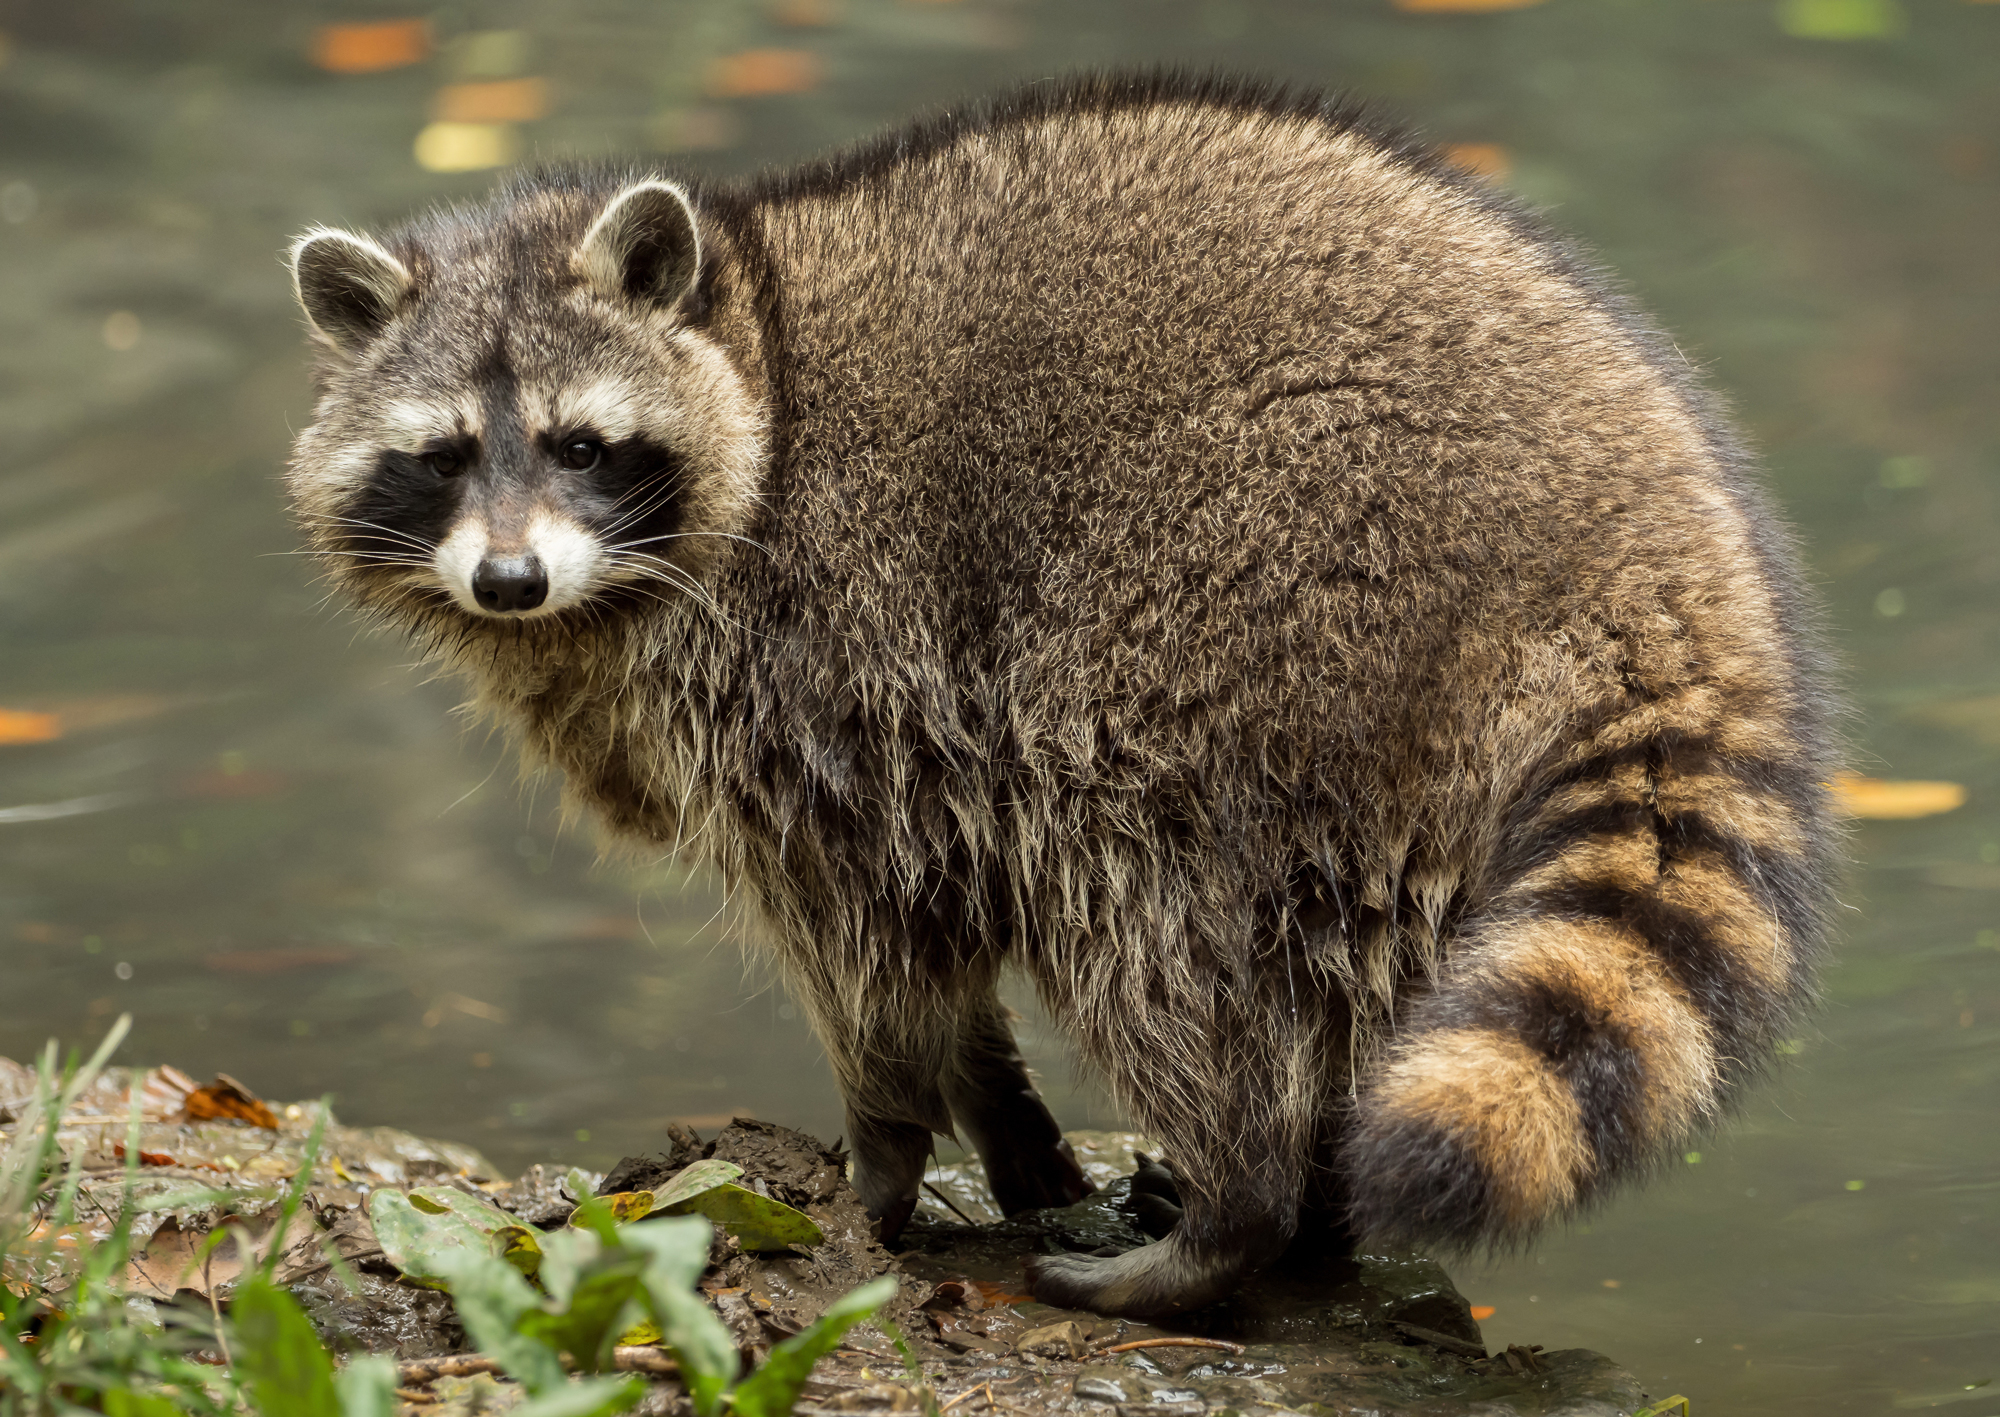 Raccoon - (Procyon lotor) use water contact to increase the tactile ability of their front paws